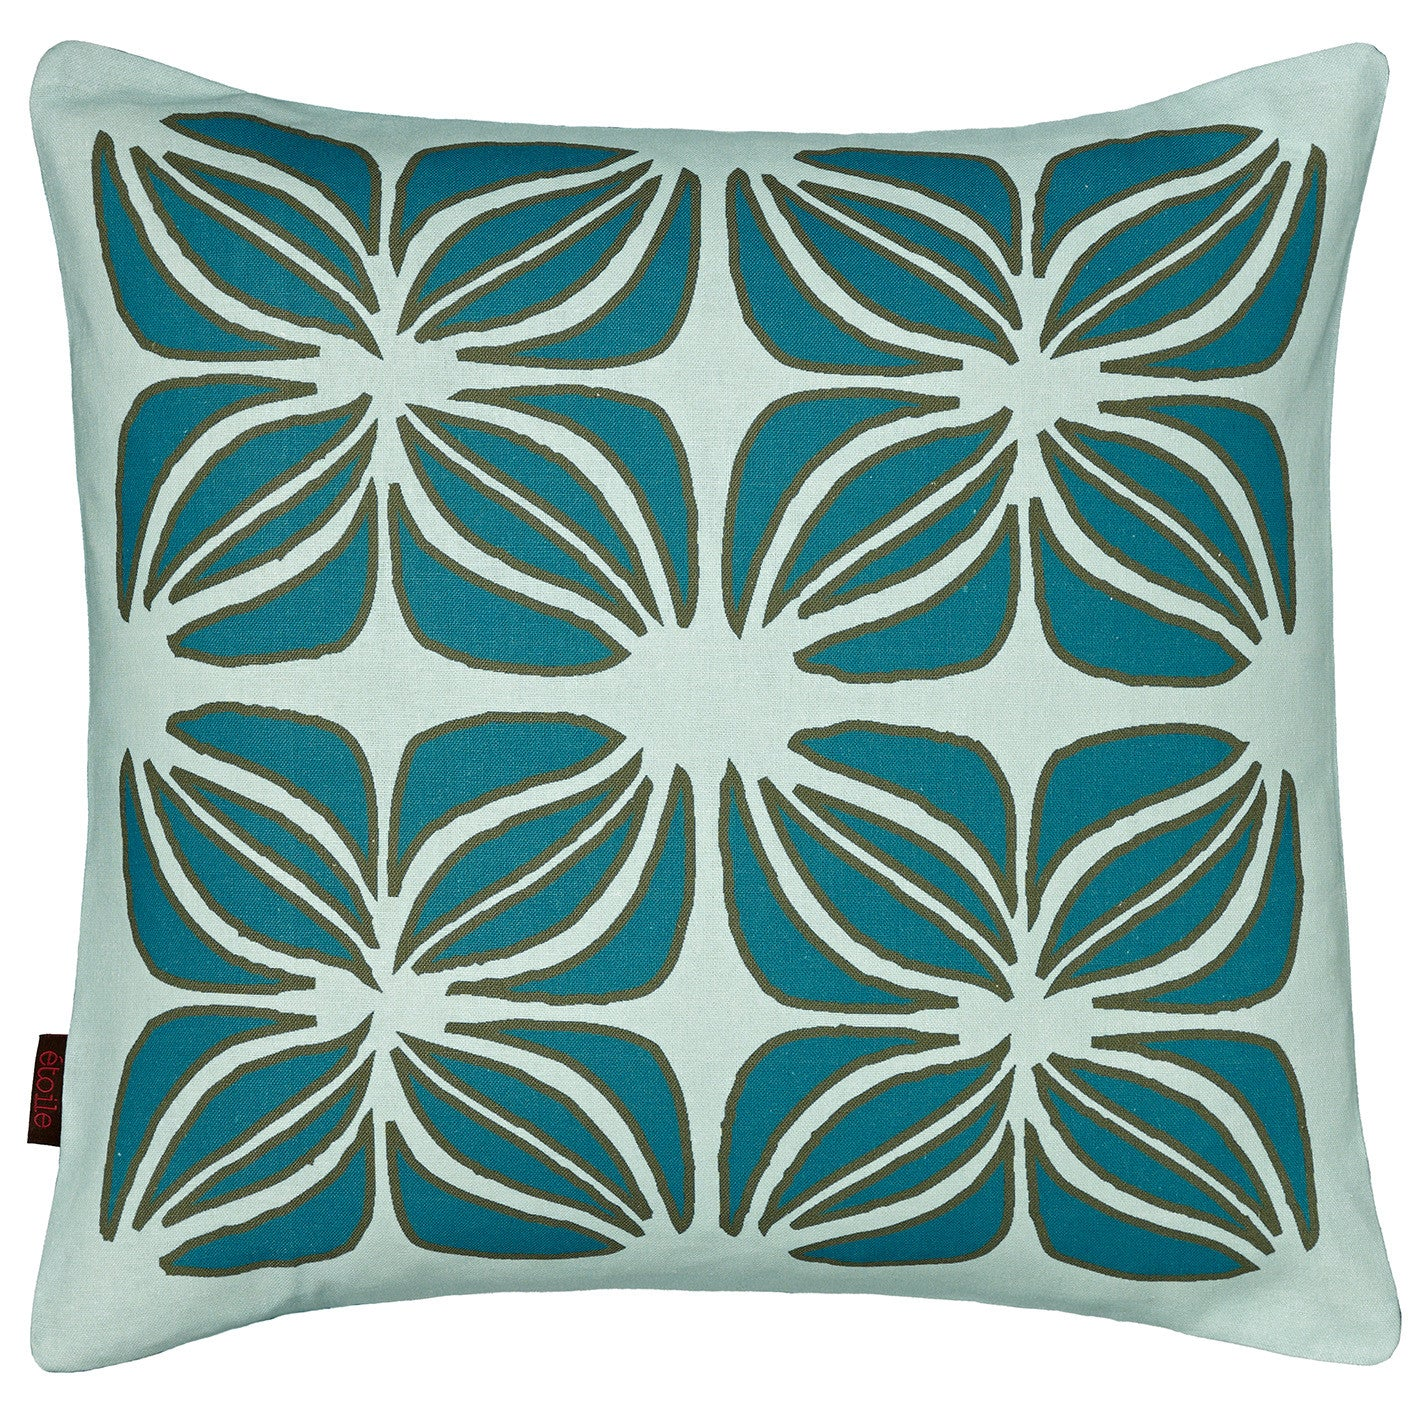 Nina Graphic Pattern Linen Cotton Pillow in Light Celeste Blue